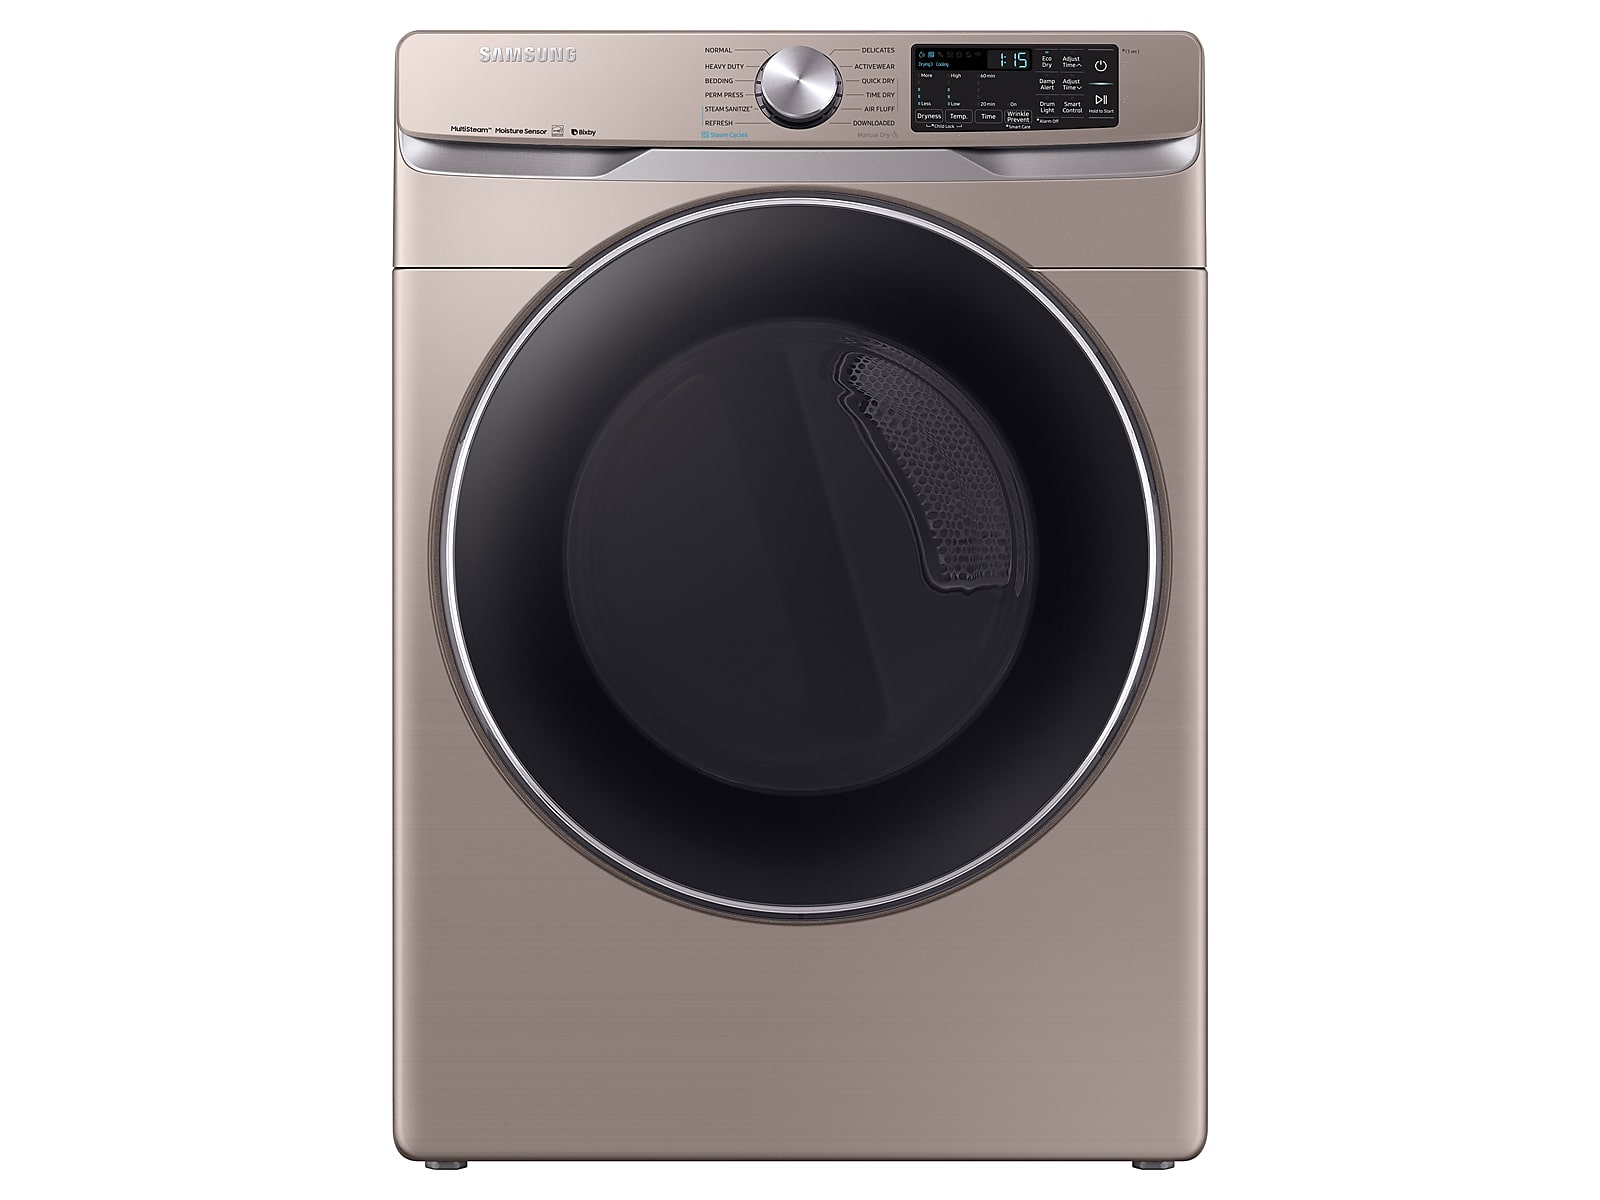 Samsung coupon: Samsung 7.5 cu. ft. Smart Electric Dryer with Steam Sanitize+ in Champagne(DVE45R6300C/A3)